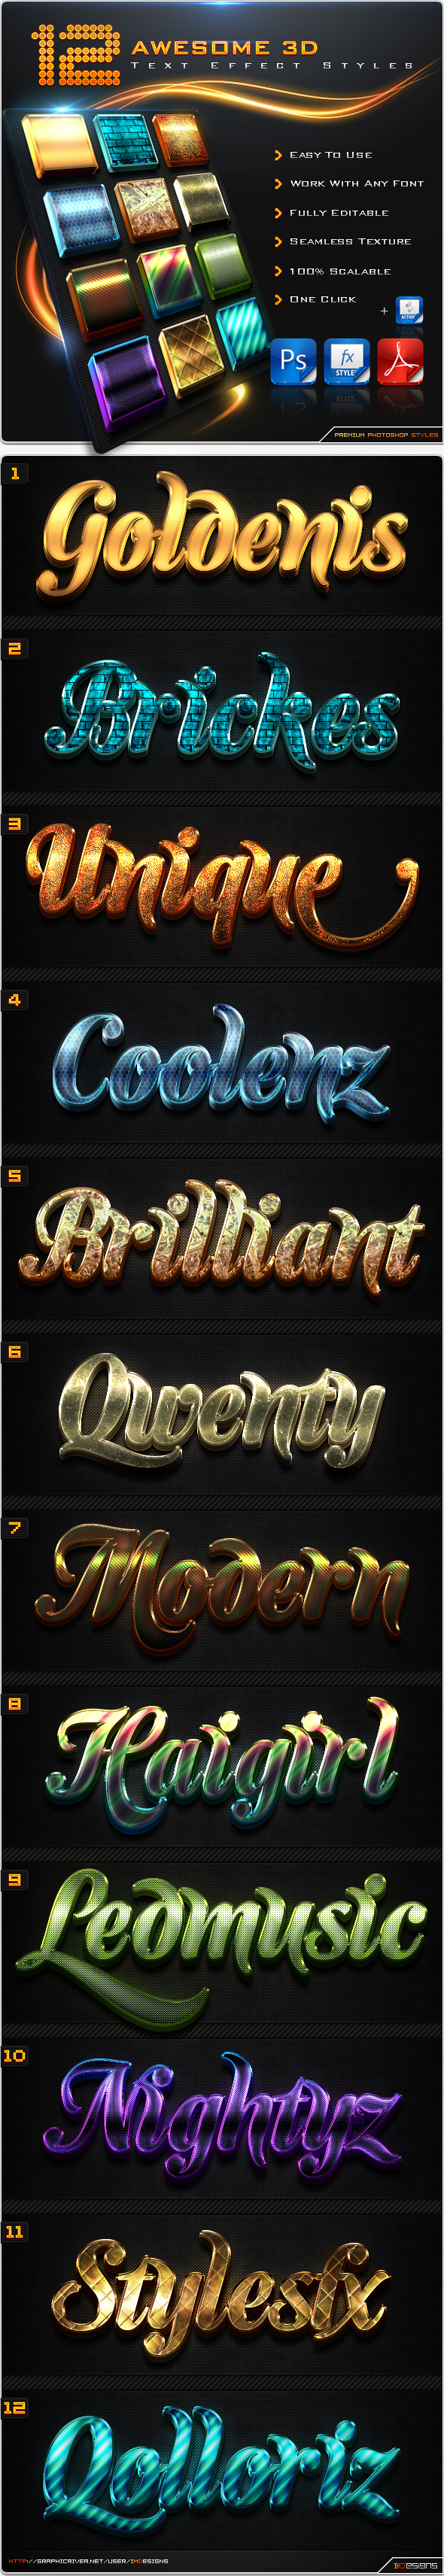 12 Awesome 3D Text Effect Styles + Actions